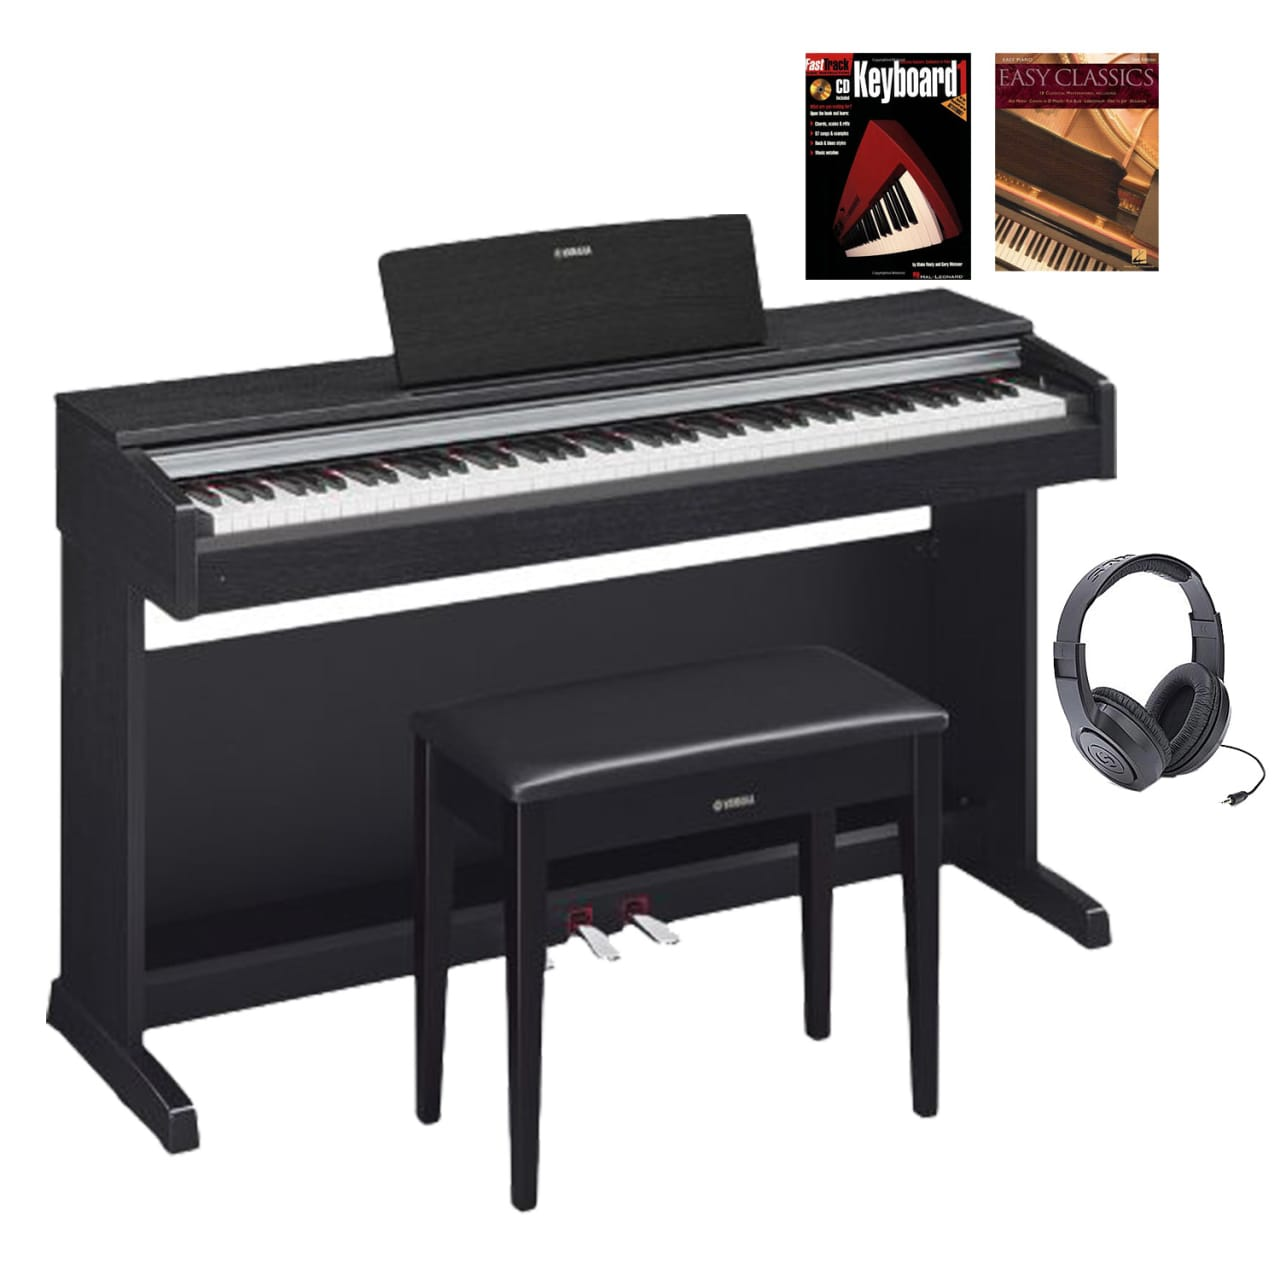 Yamaha ydp142b traditional console digital piano with for Yamaha console piano prices